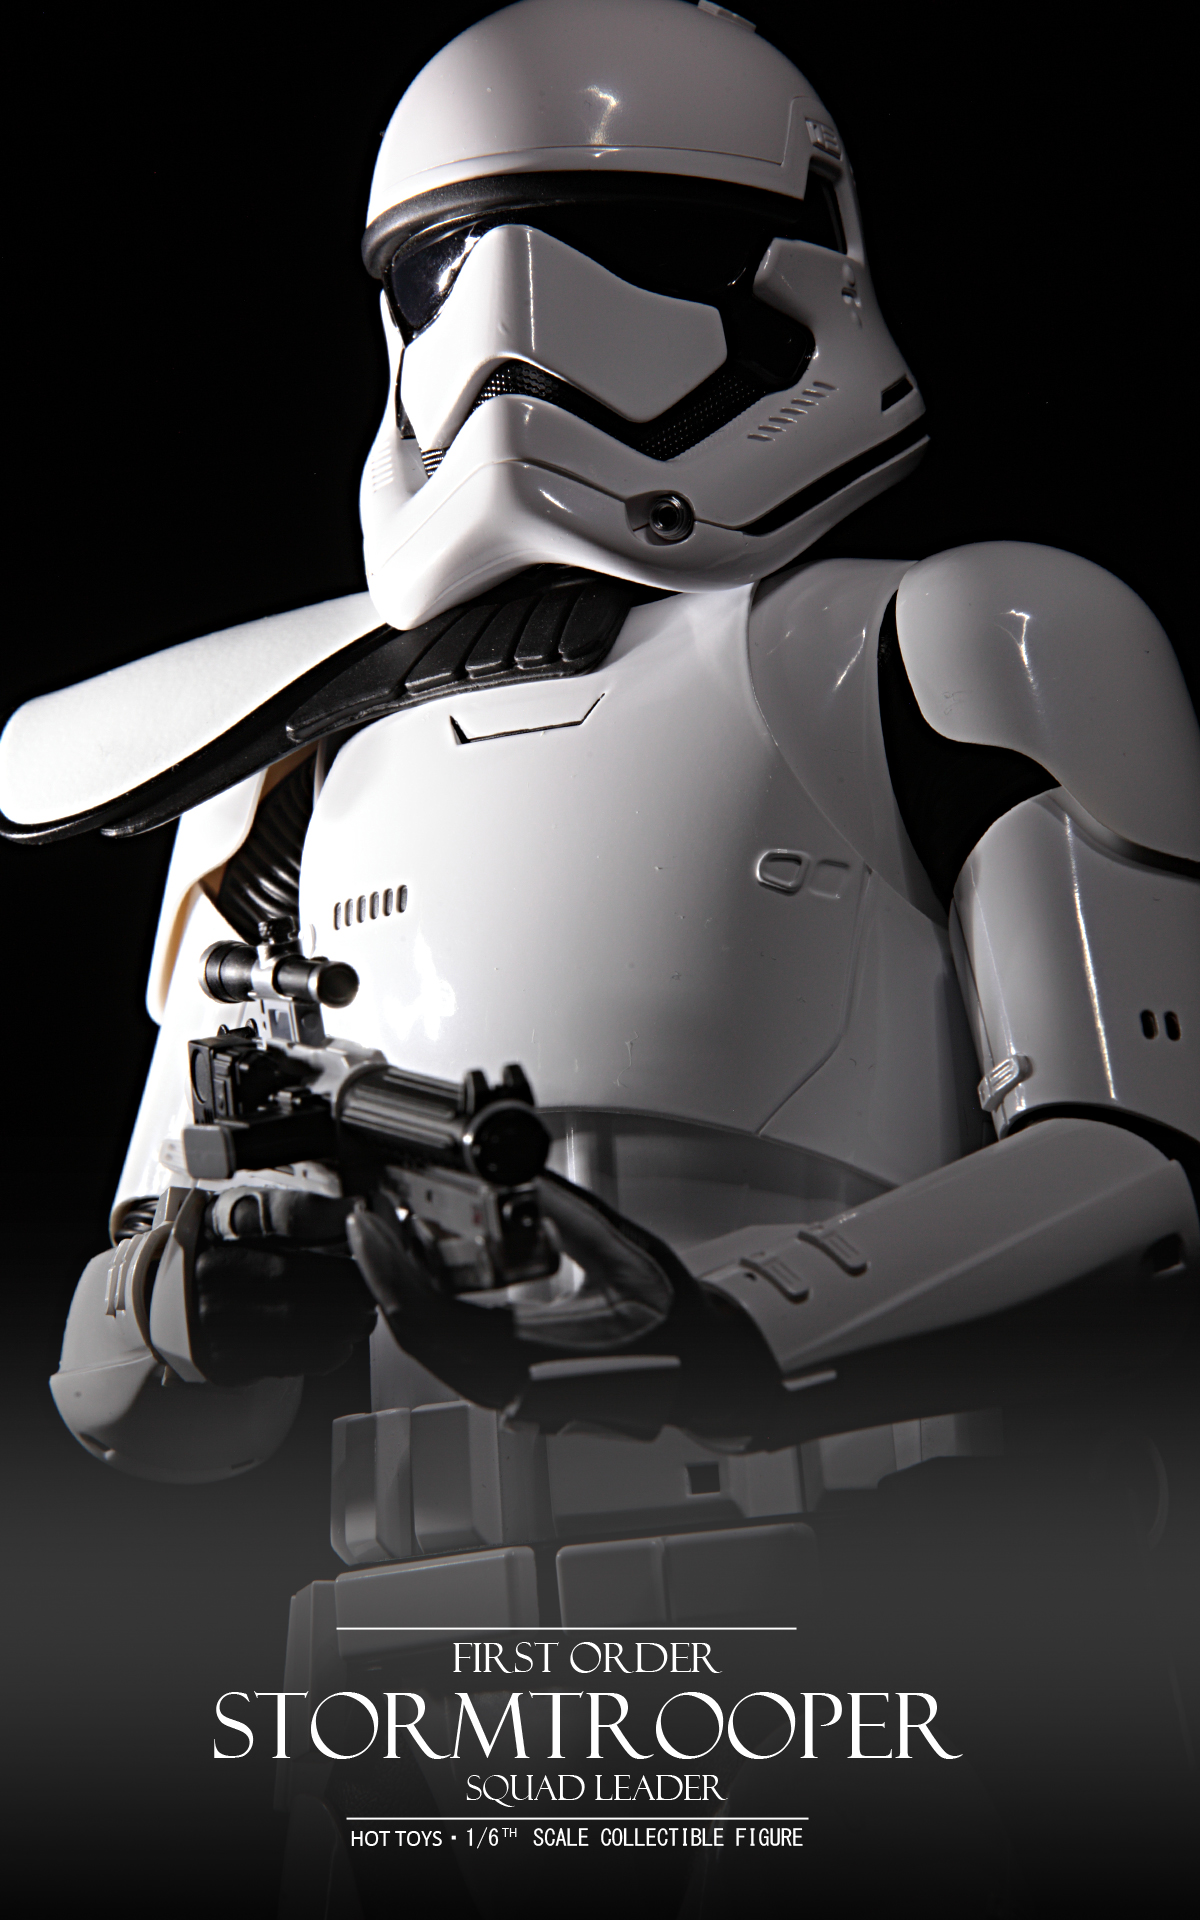 hottoys-star-wars-the-force-awakens-first-order-stormtrooper-Squad-Leader-picture01hottoys-star-wars-the-force-awakens-first-order-stormtrooper-Squad-Leader-picture10